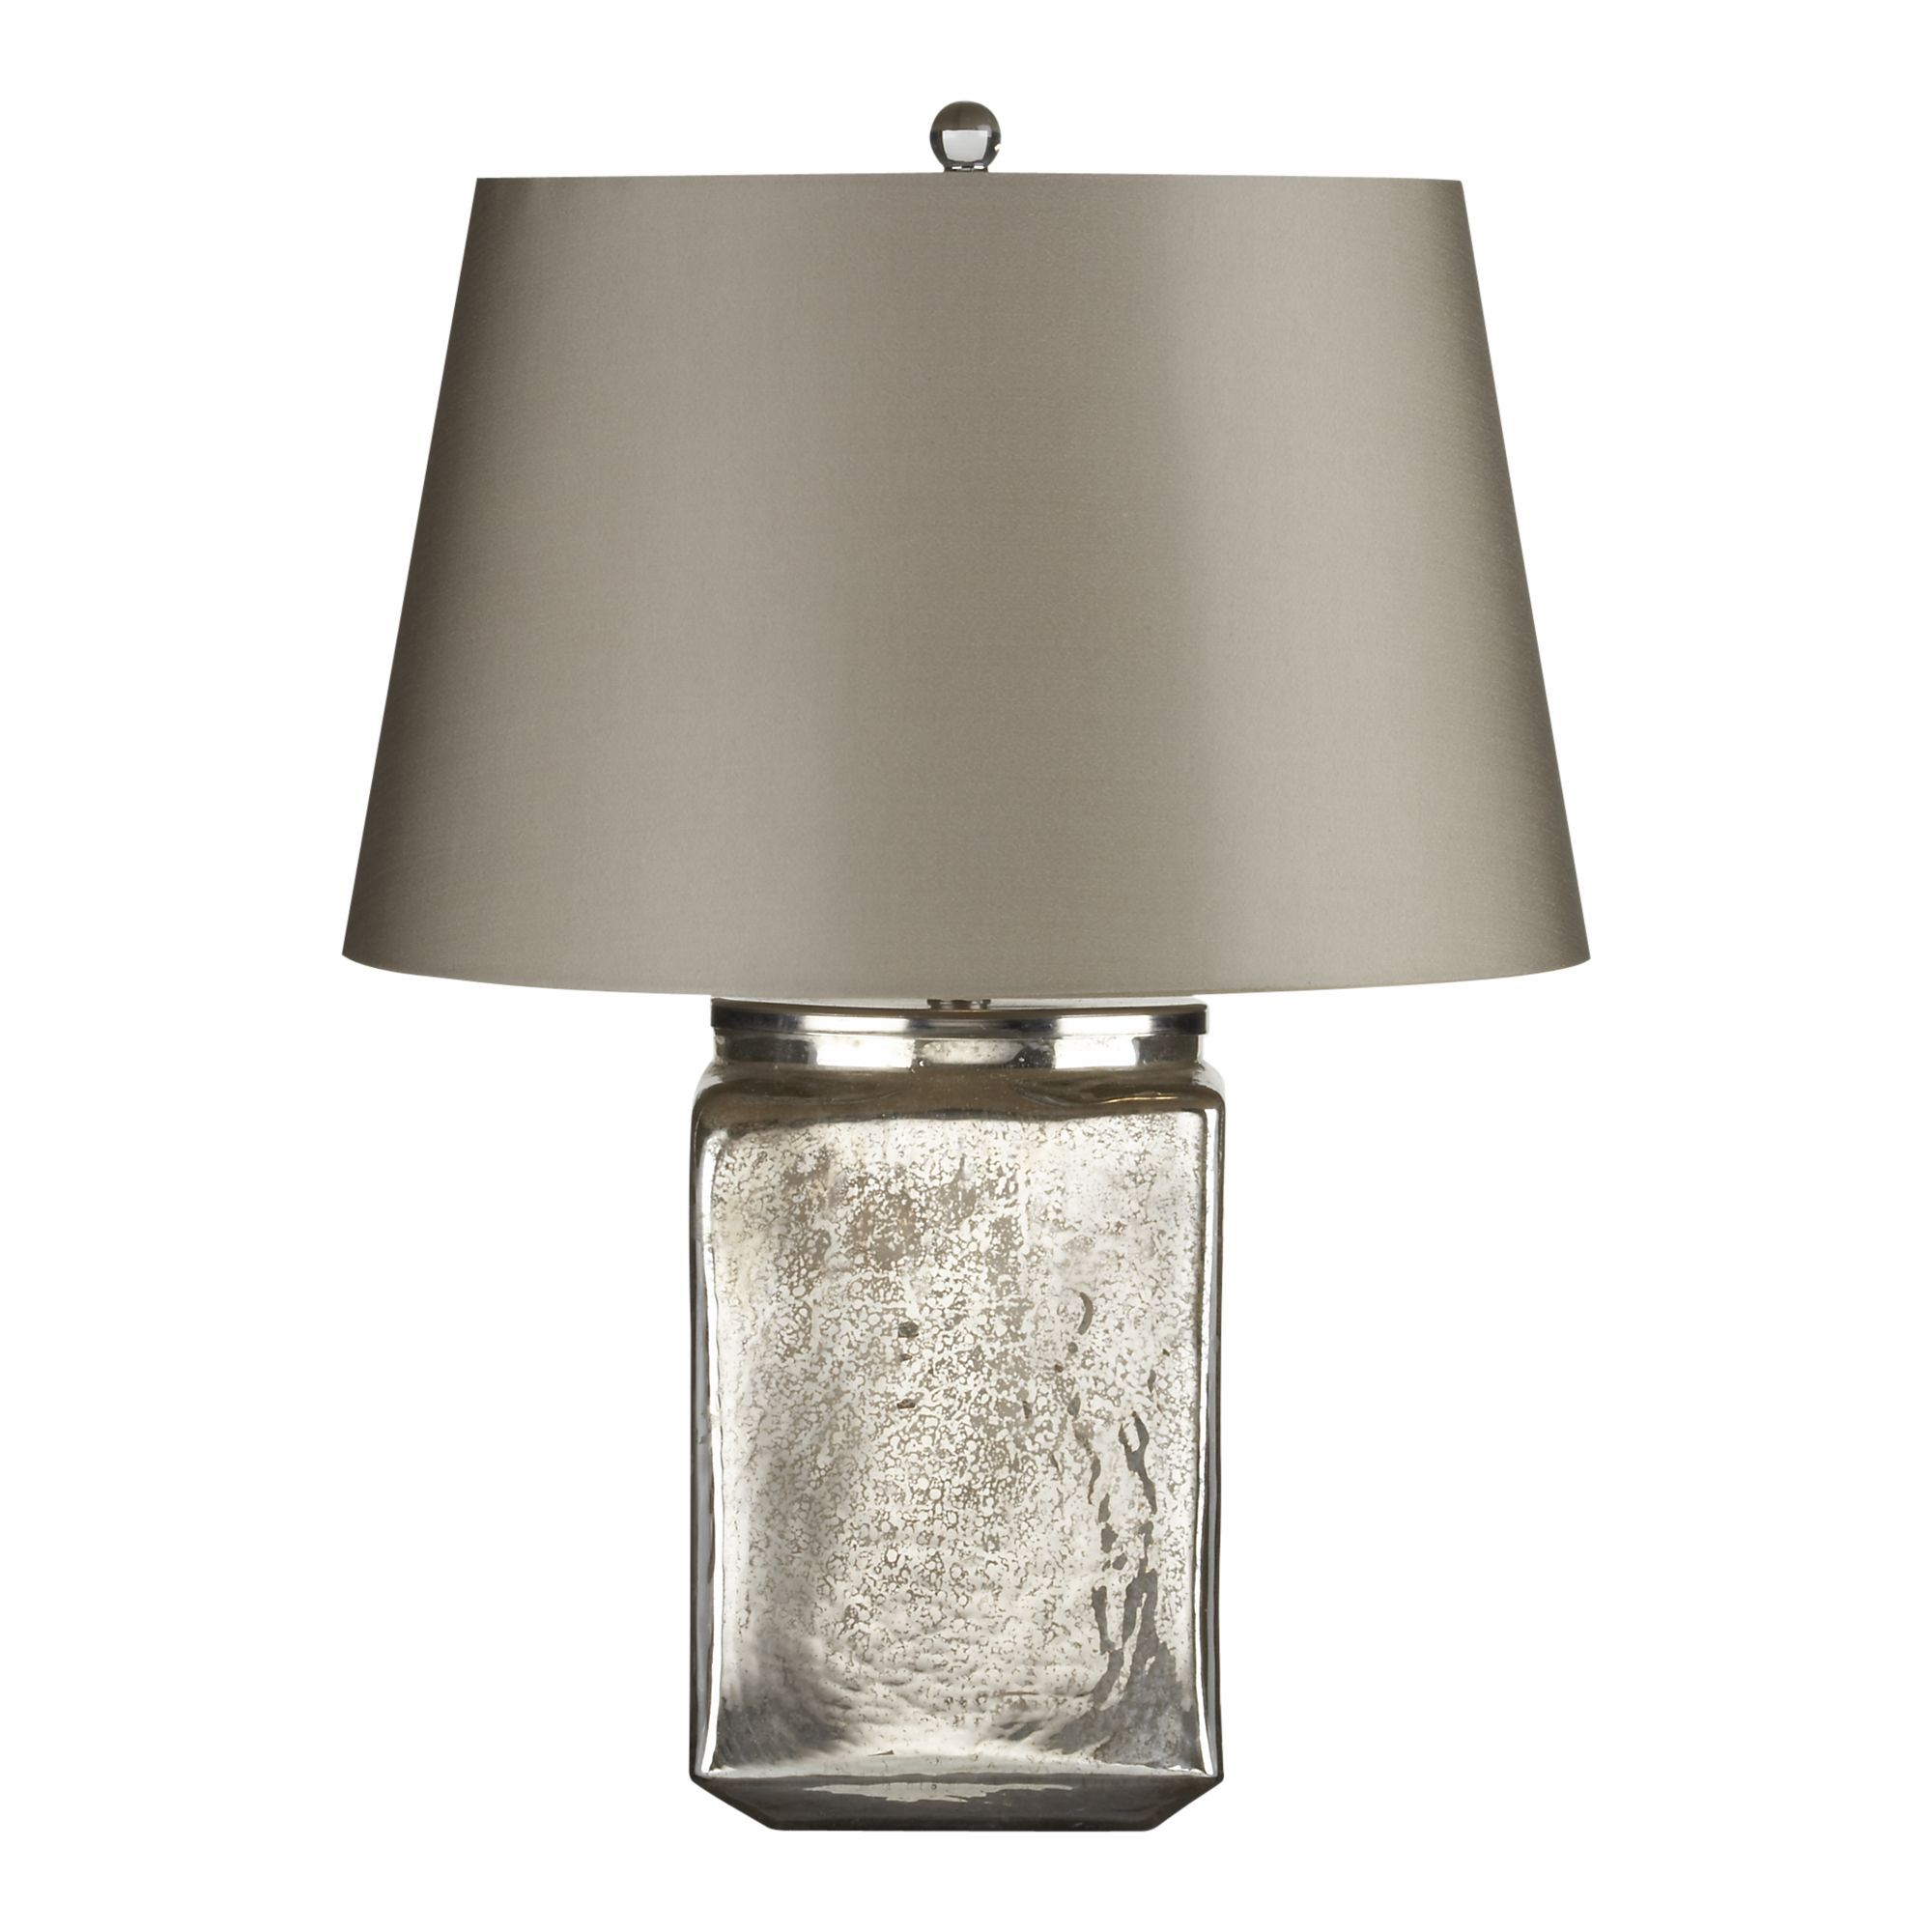 Cane Grey Table Lamp + Reviews Crate and Barrel Grey